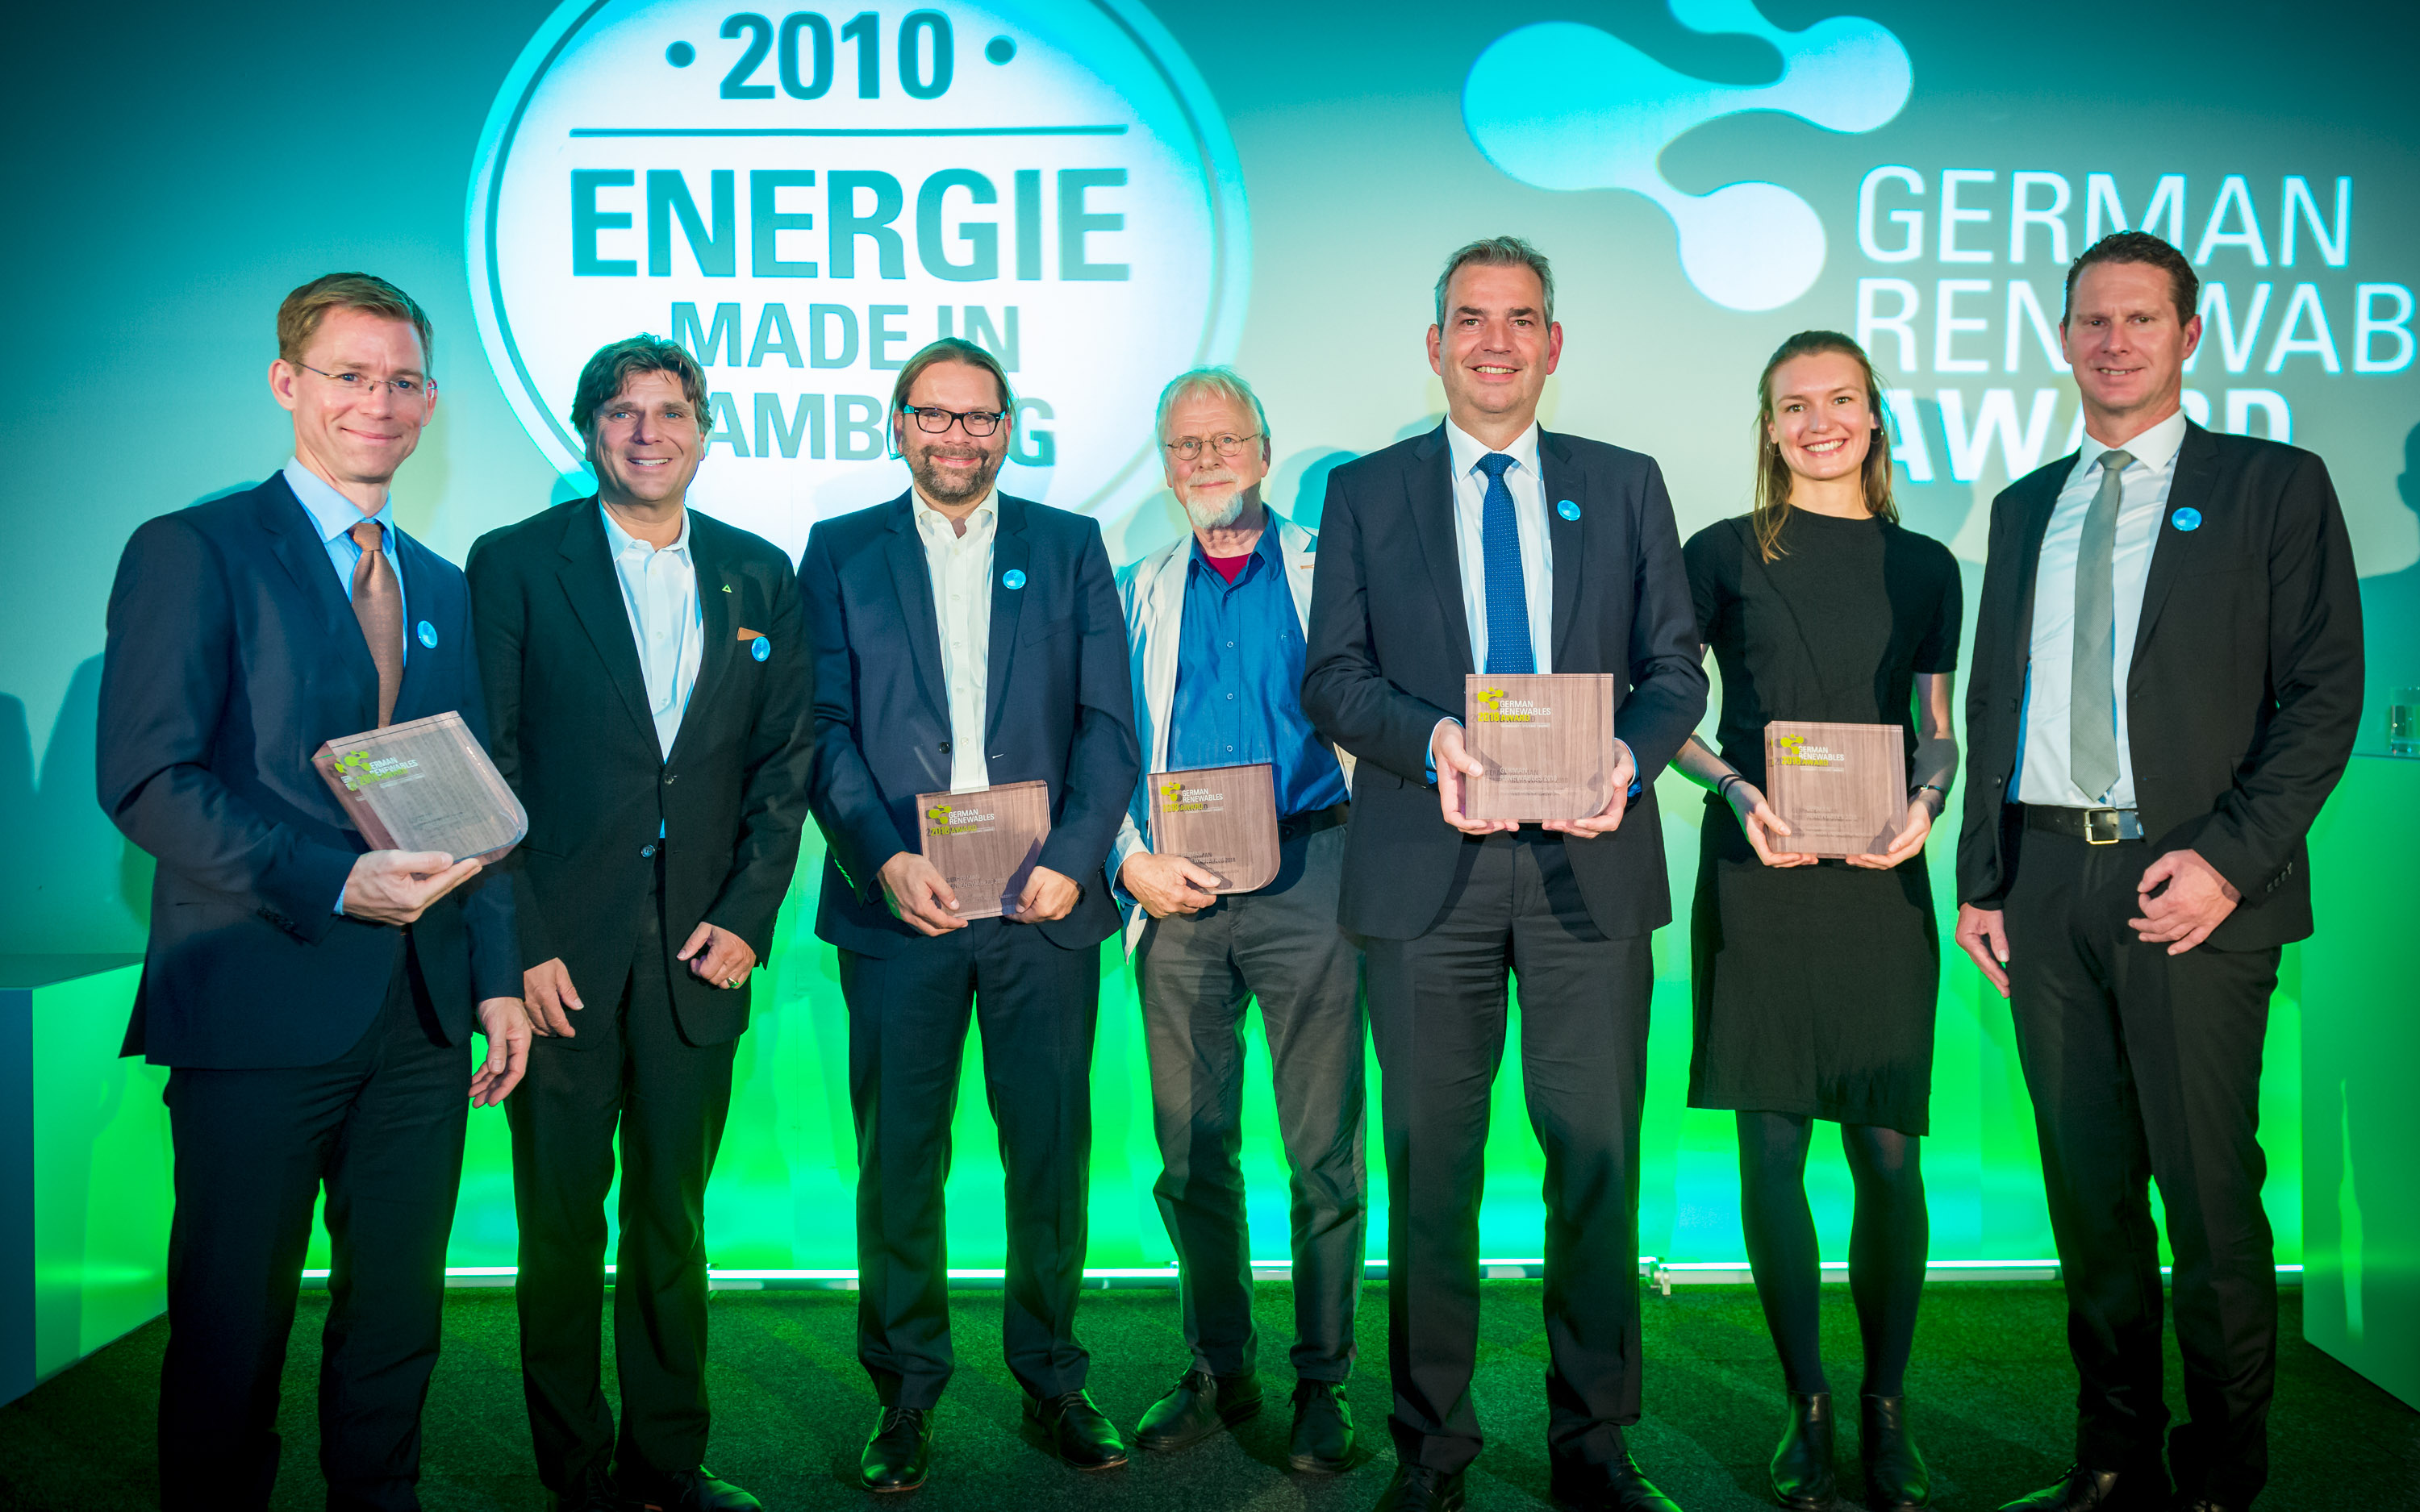 Verleihung des 7. German Renewables Awards 2018